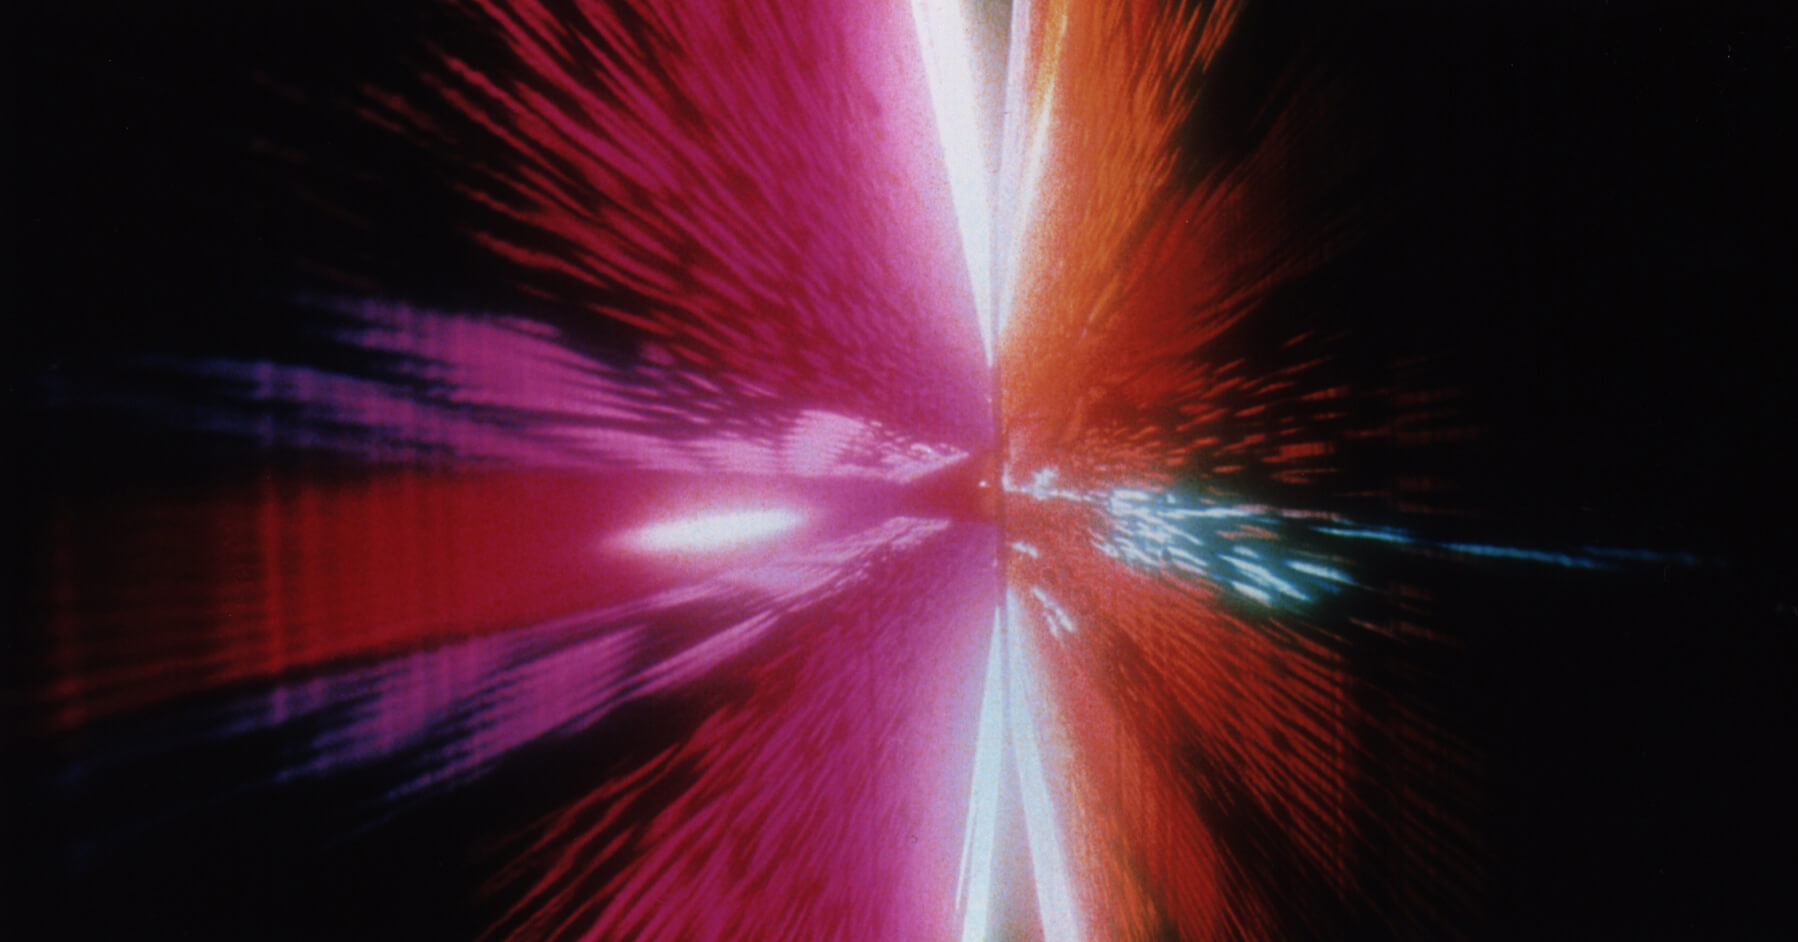 A still showing the Star Gate sequence, 2001: A Space Odyssey | Space Odyssey exhibition | Stanley Kubrick | STIRworld